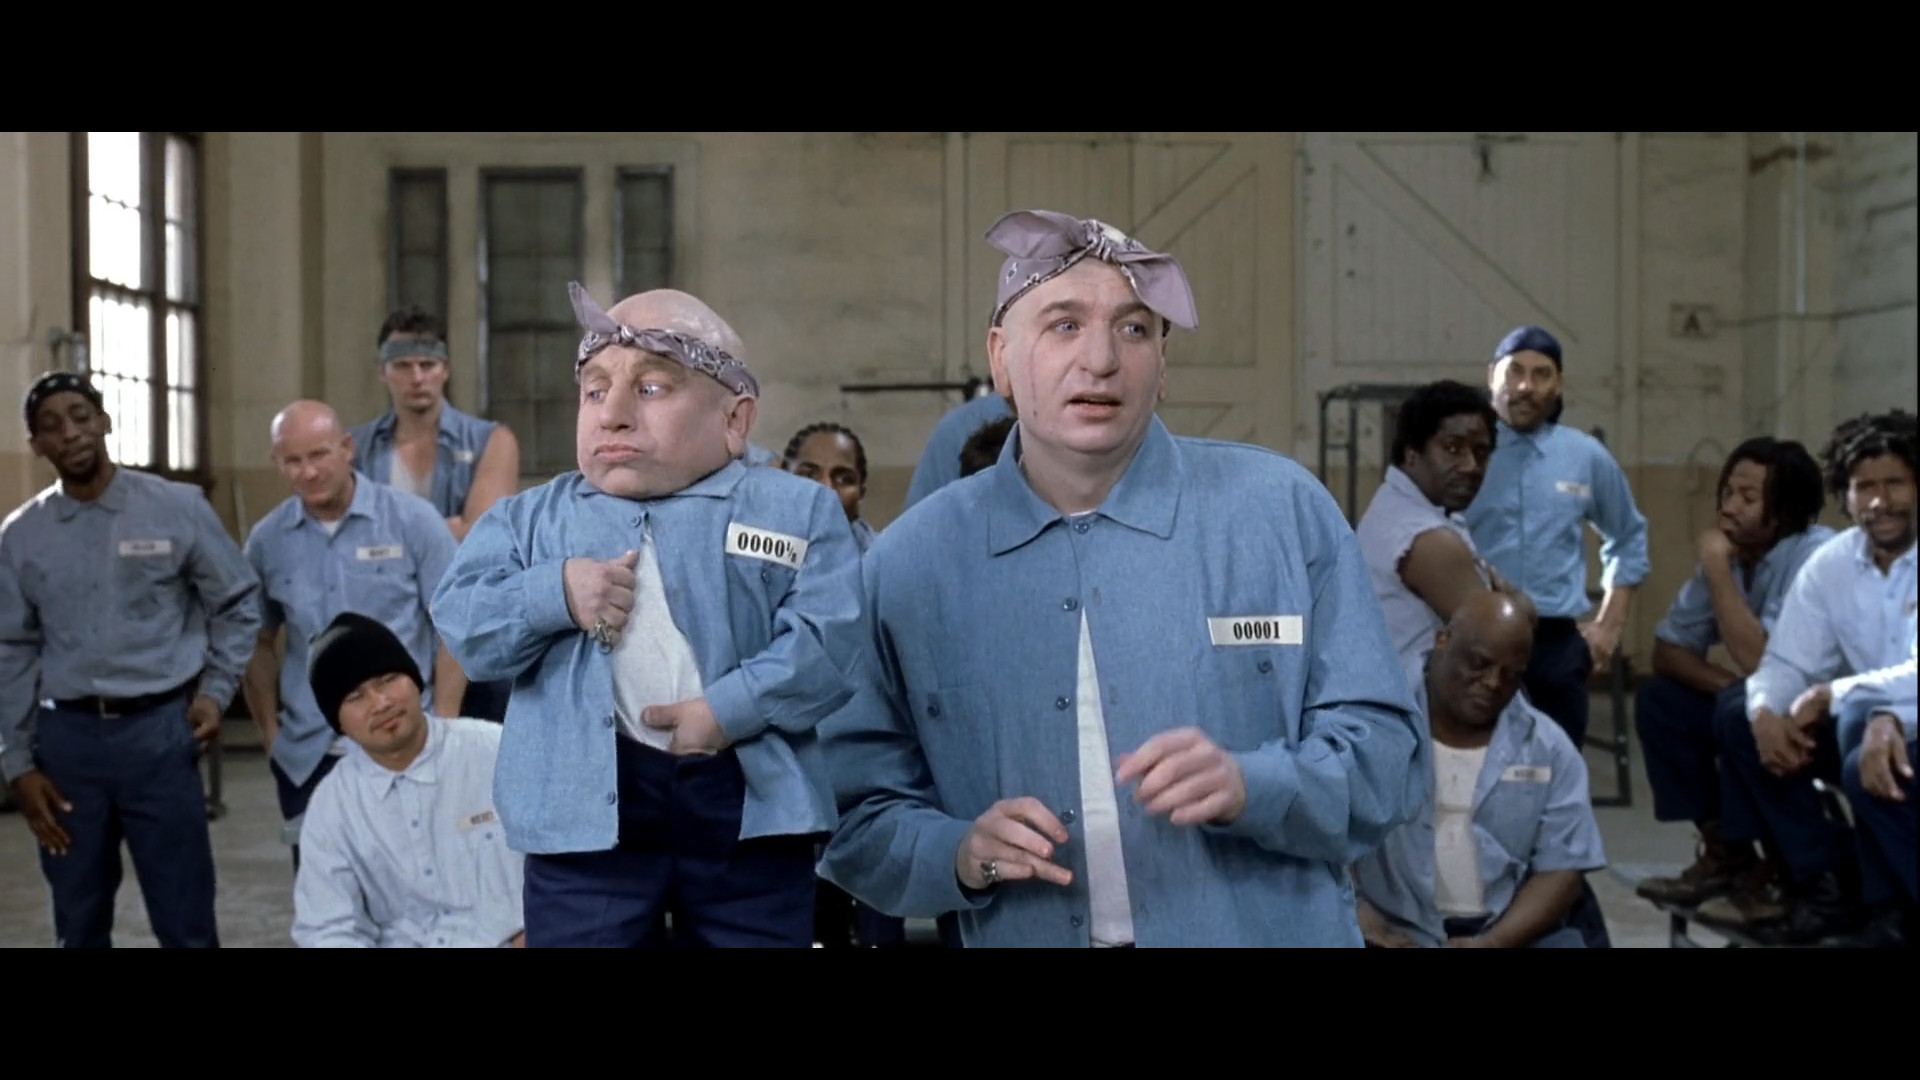 Res: 1920x1080, Dr. Evil's number in prison is 1, while Mini-Me's number is ½ [Austin Powers  Goldmember] ...